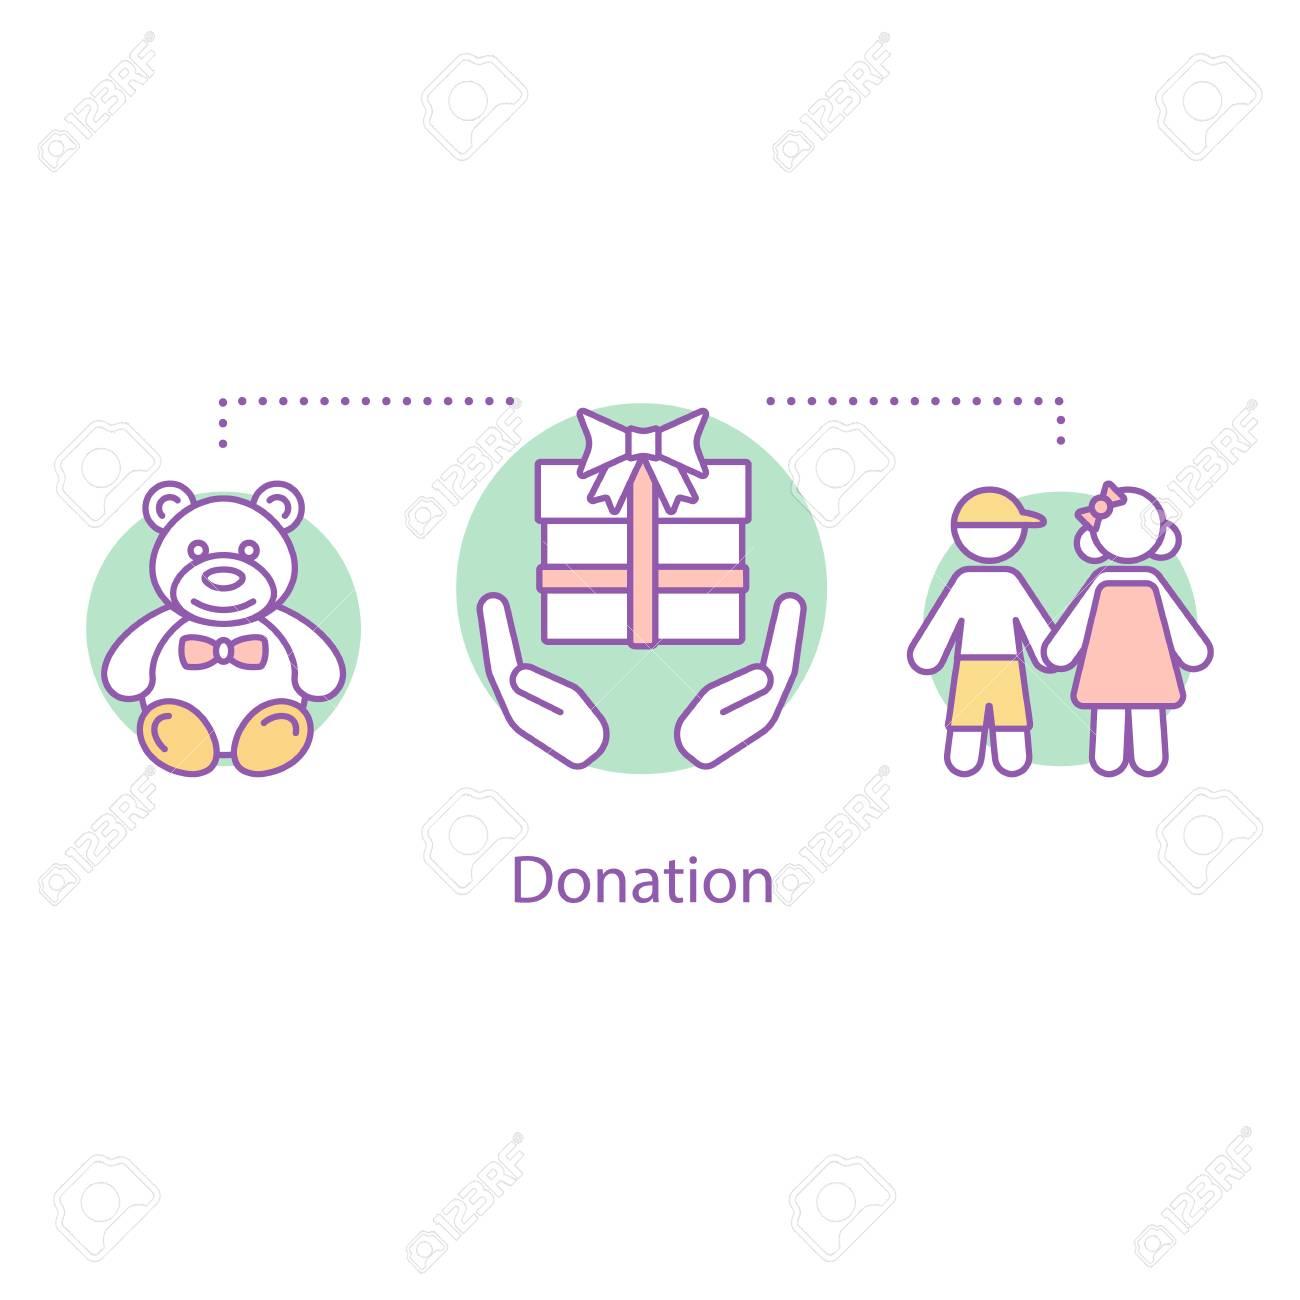 Donation Concept Icon Children S Charity Idea Thin Line Illustration Royalty Free Cliparts Vectors And Stock Illustration Image 106249892